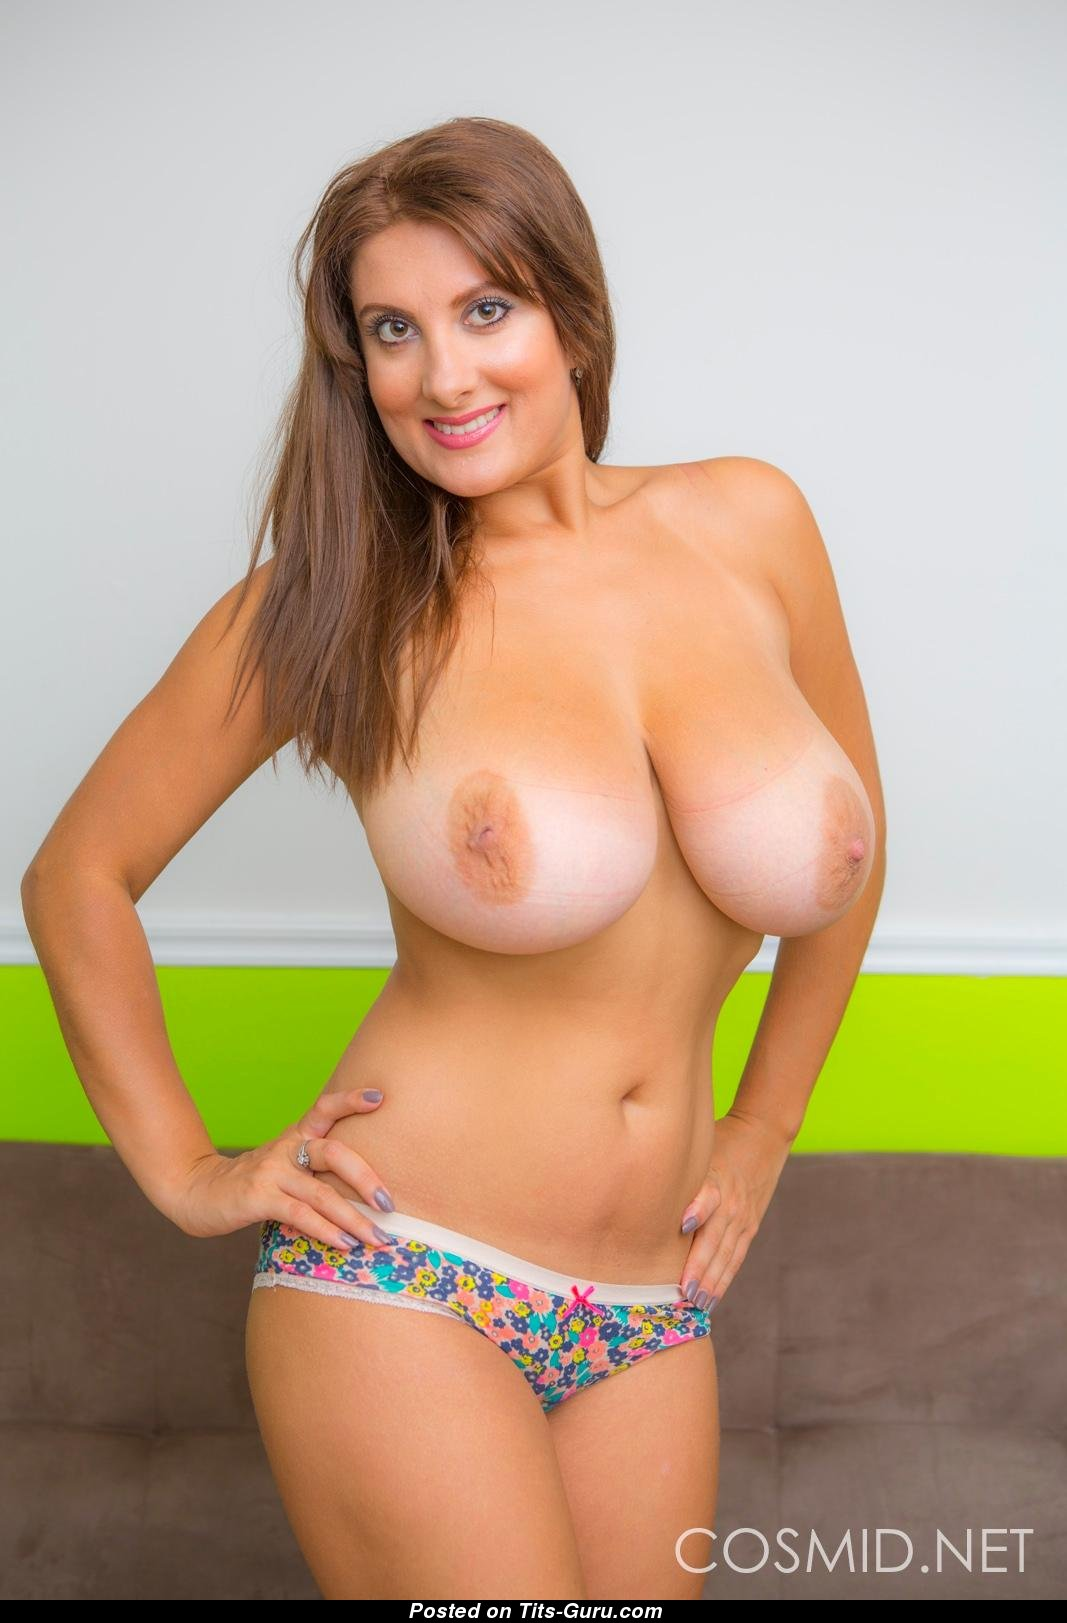 Valory Irene - Babe With Bare Natural Gigantic Titty Sex Foto 15102015 194158-3132